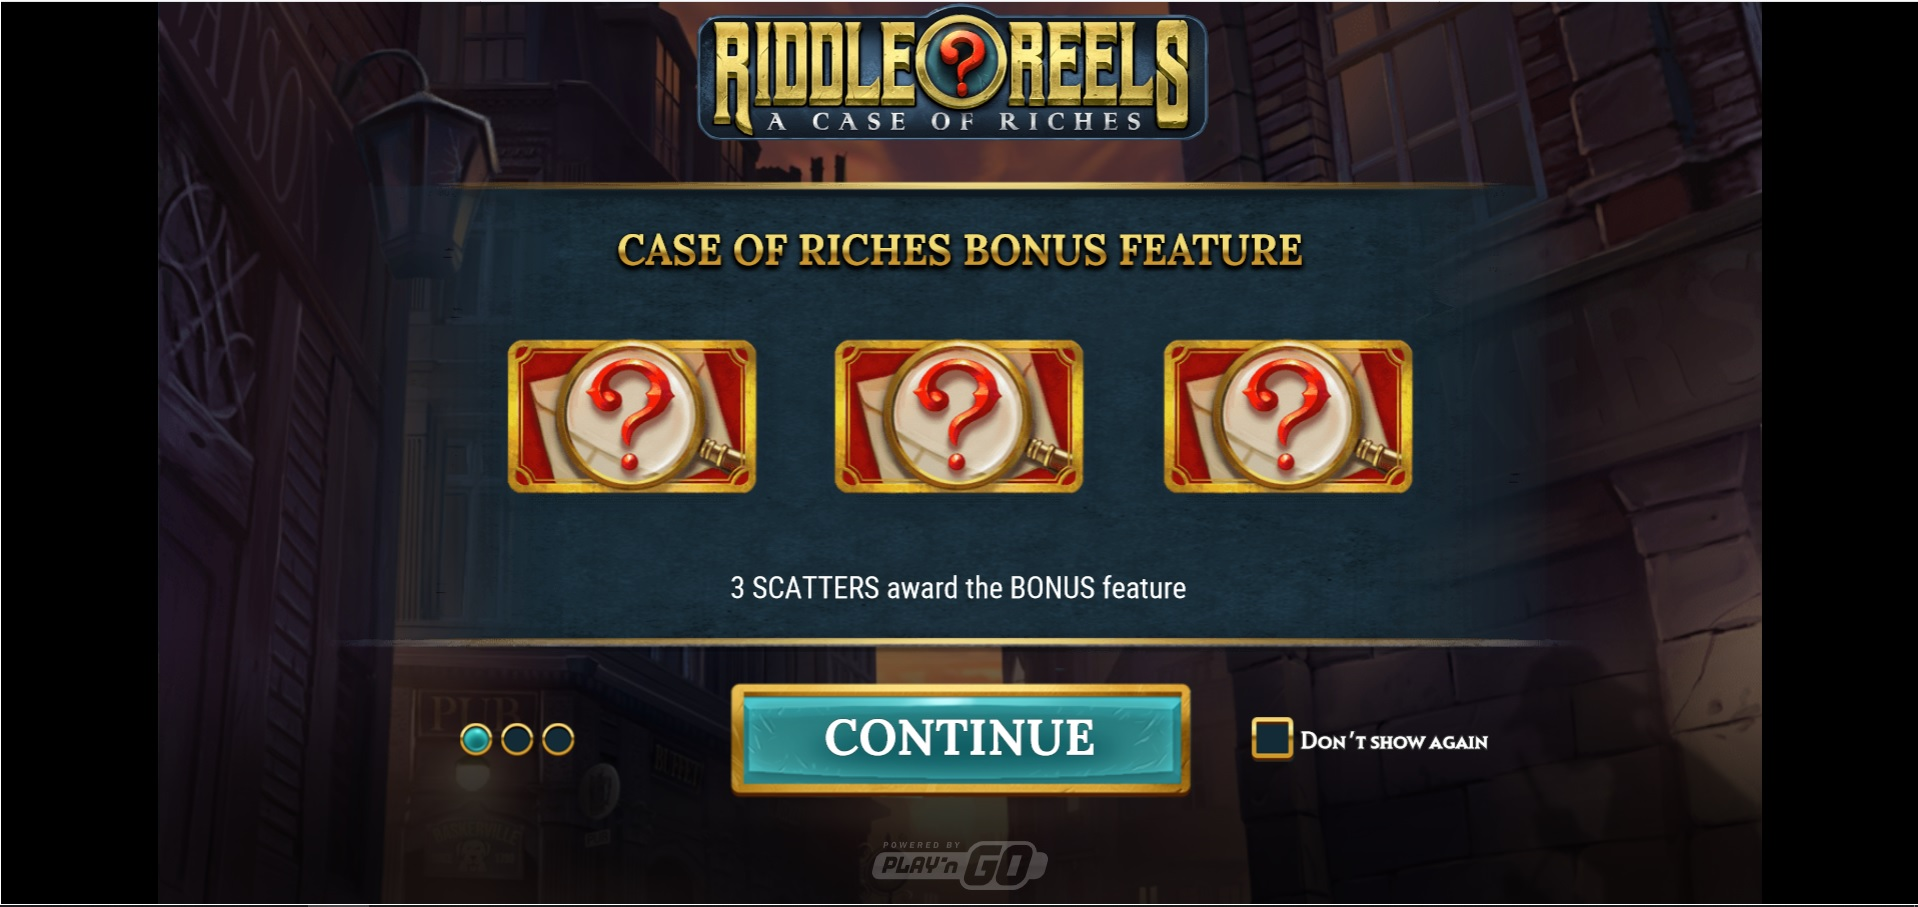 How to win big in Riddle Reels – Case of Riches